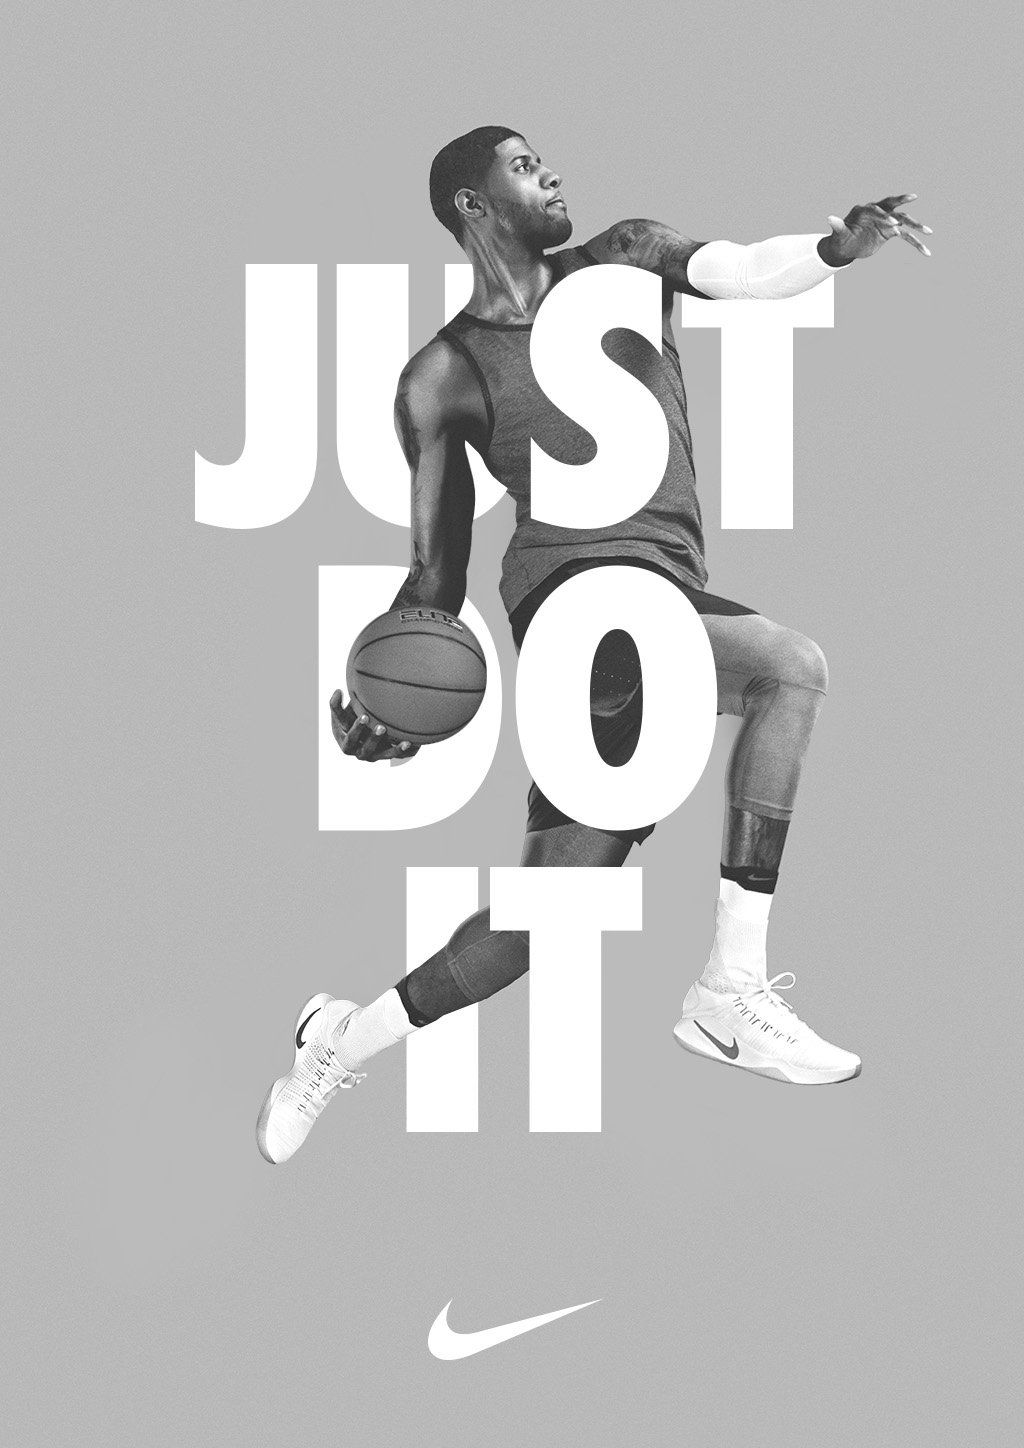 nike advertisement analysis essay